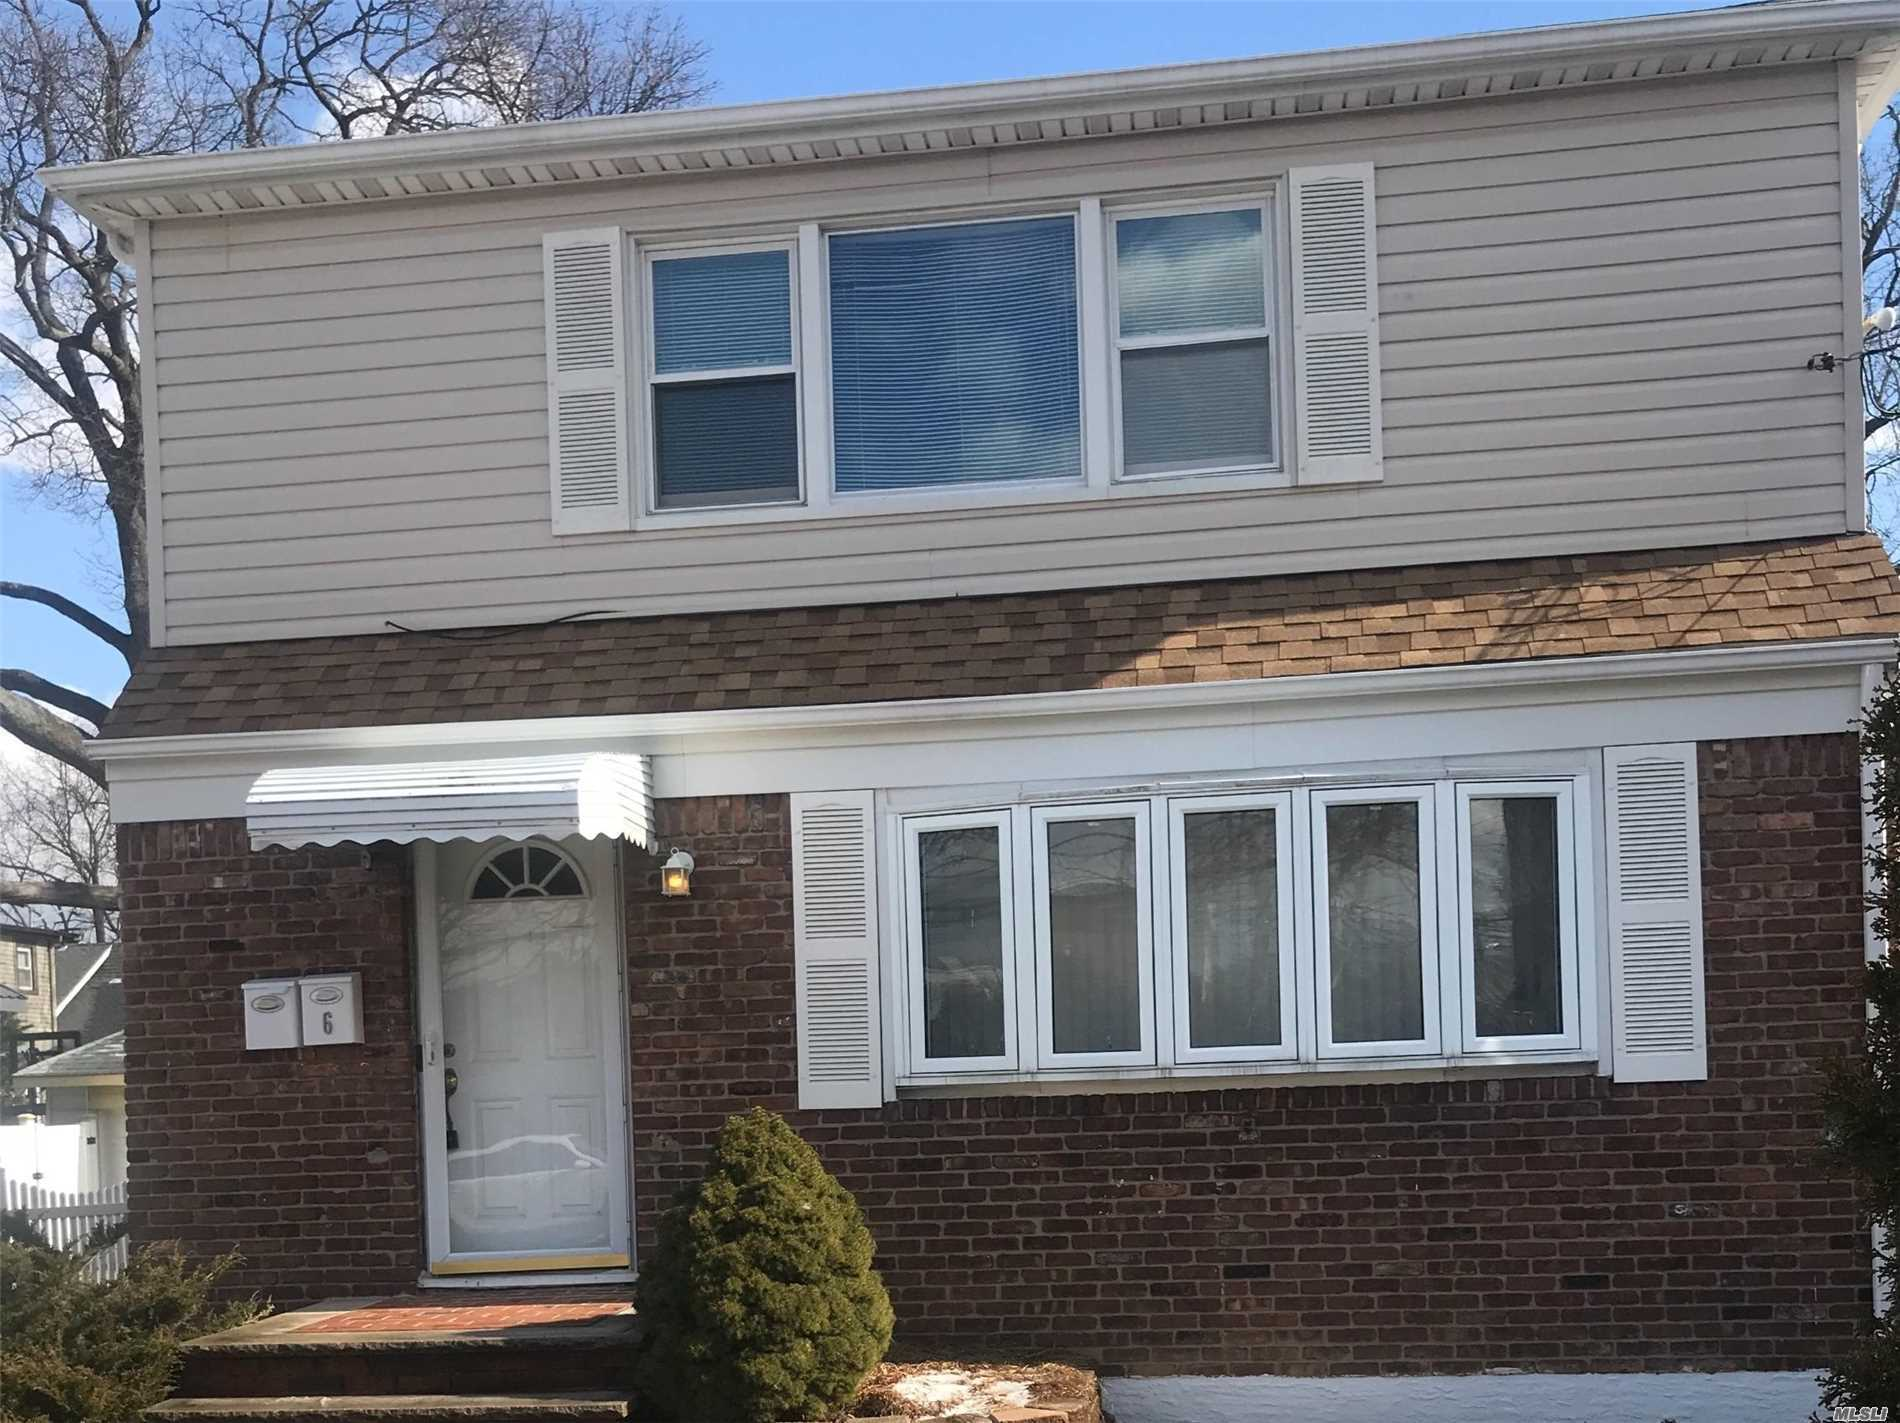 Spacious And Well Maintained 2 Bedroom Apartment Located On Top Floor Of 2 Story Home. Living Room, Dining Room, Eat In Kitchen, Large Master Bedroom With 2 Closets. Parking For 2 Cars. Gas Heat/cooking And Electric Not Included. A/C Allowed In Window Move in ready. School District #20. Greis park and pool nearby. No Pets.